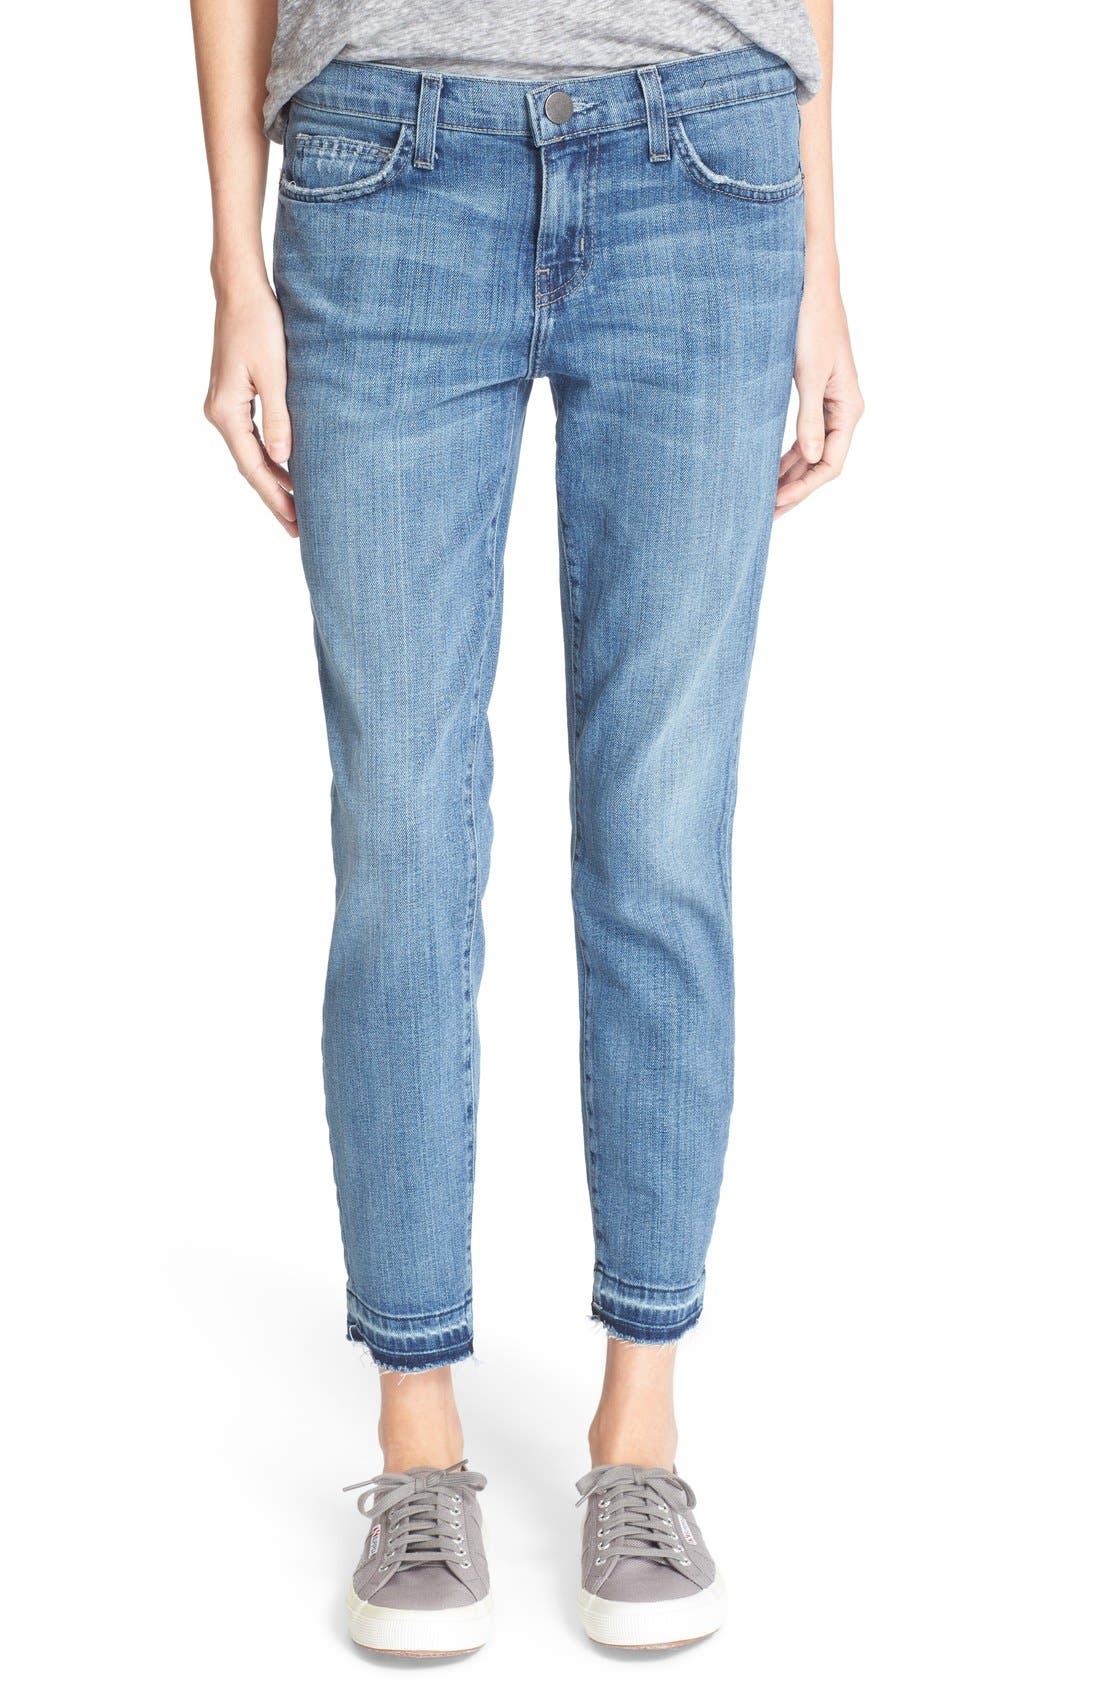 Alternate Image 1 Selected - Current/Elliott 'The Stiletto' Stretch Jeans (Amour Released Hem)